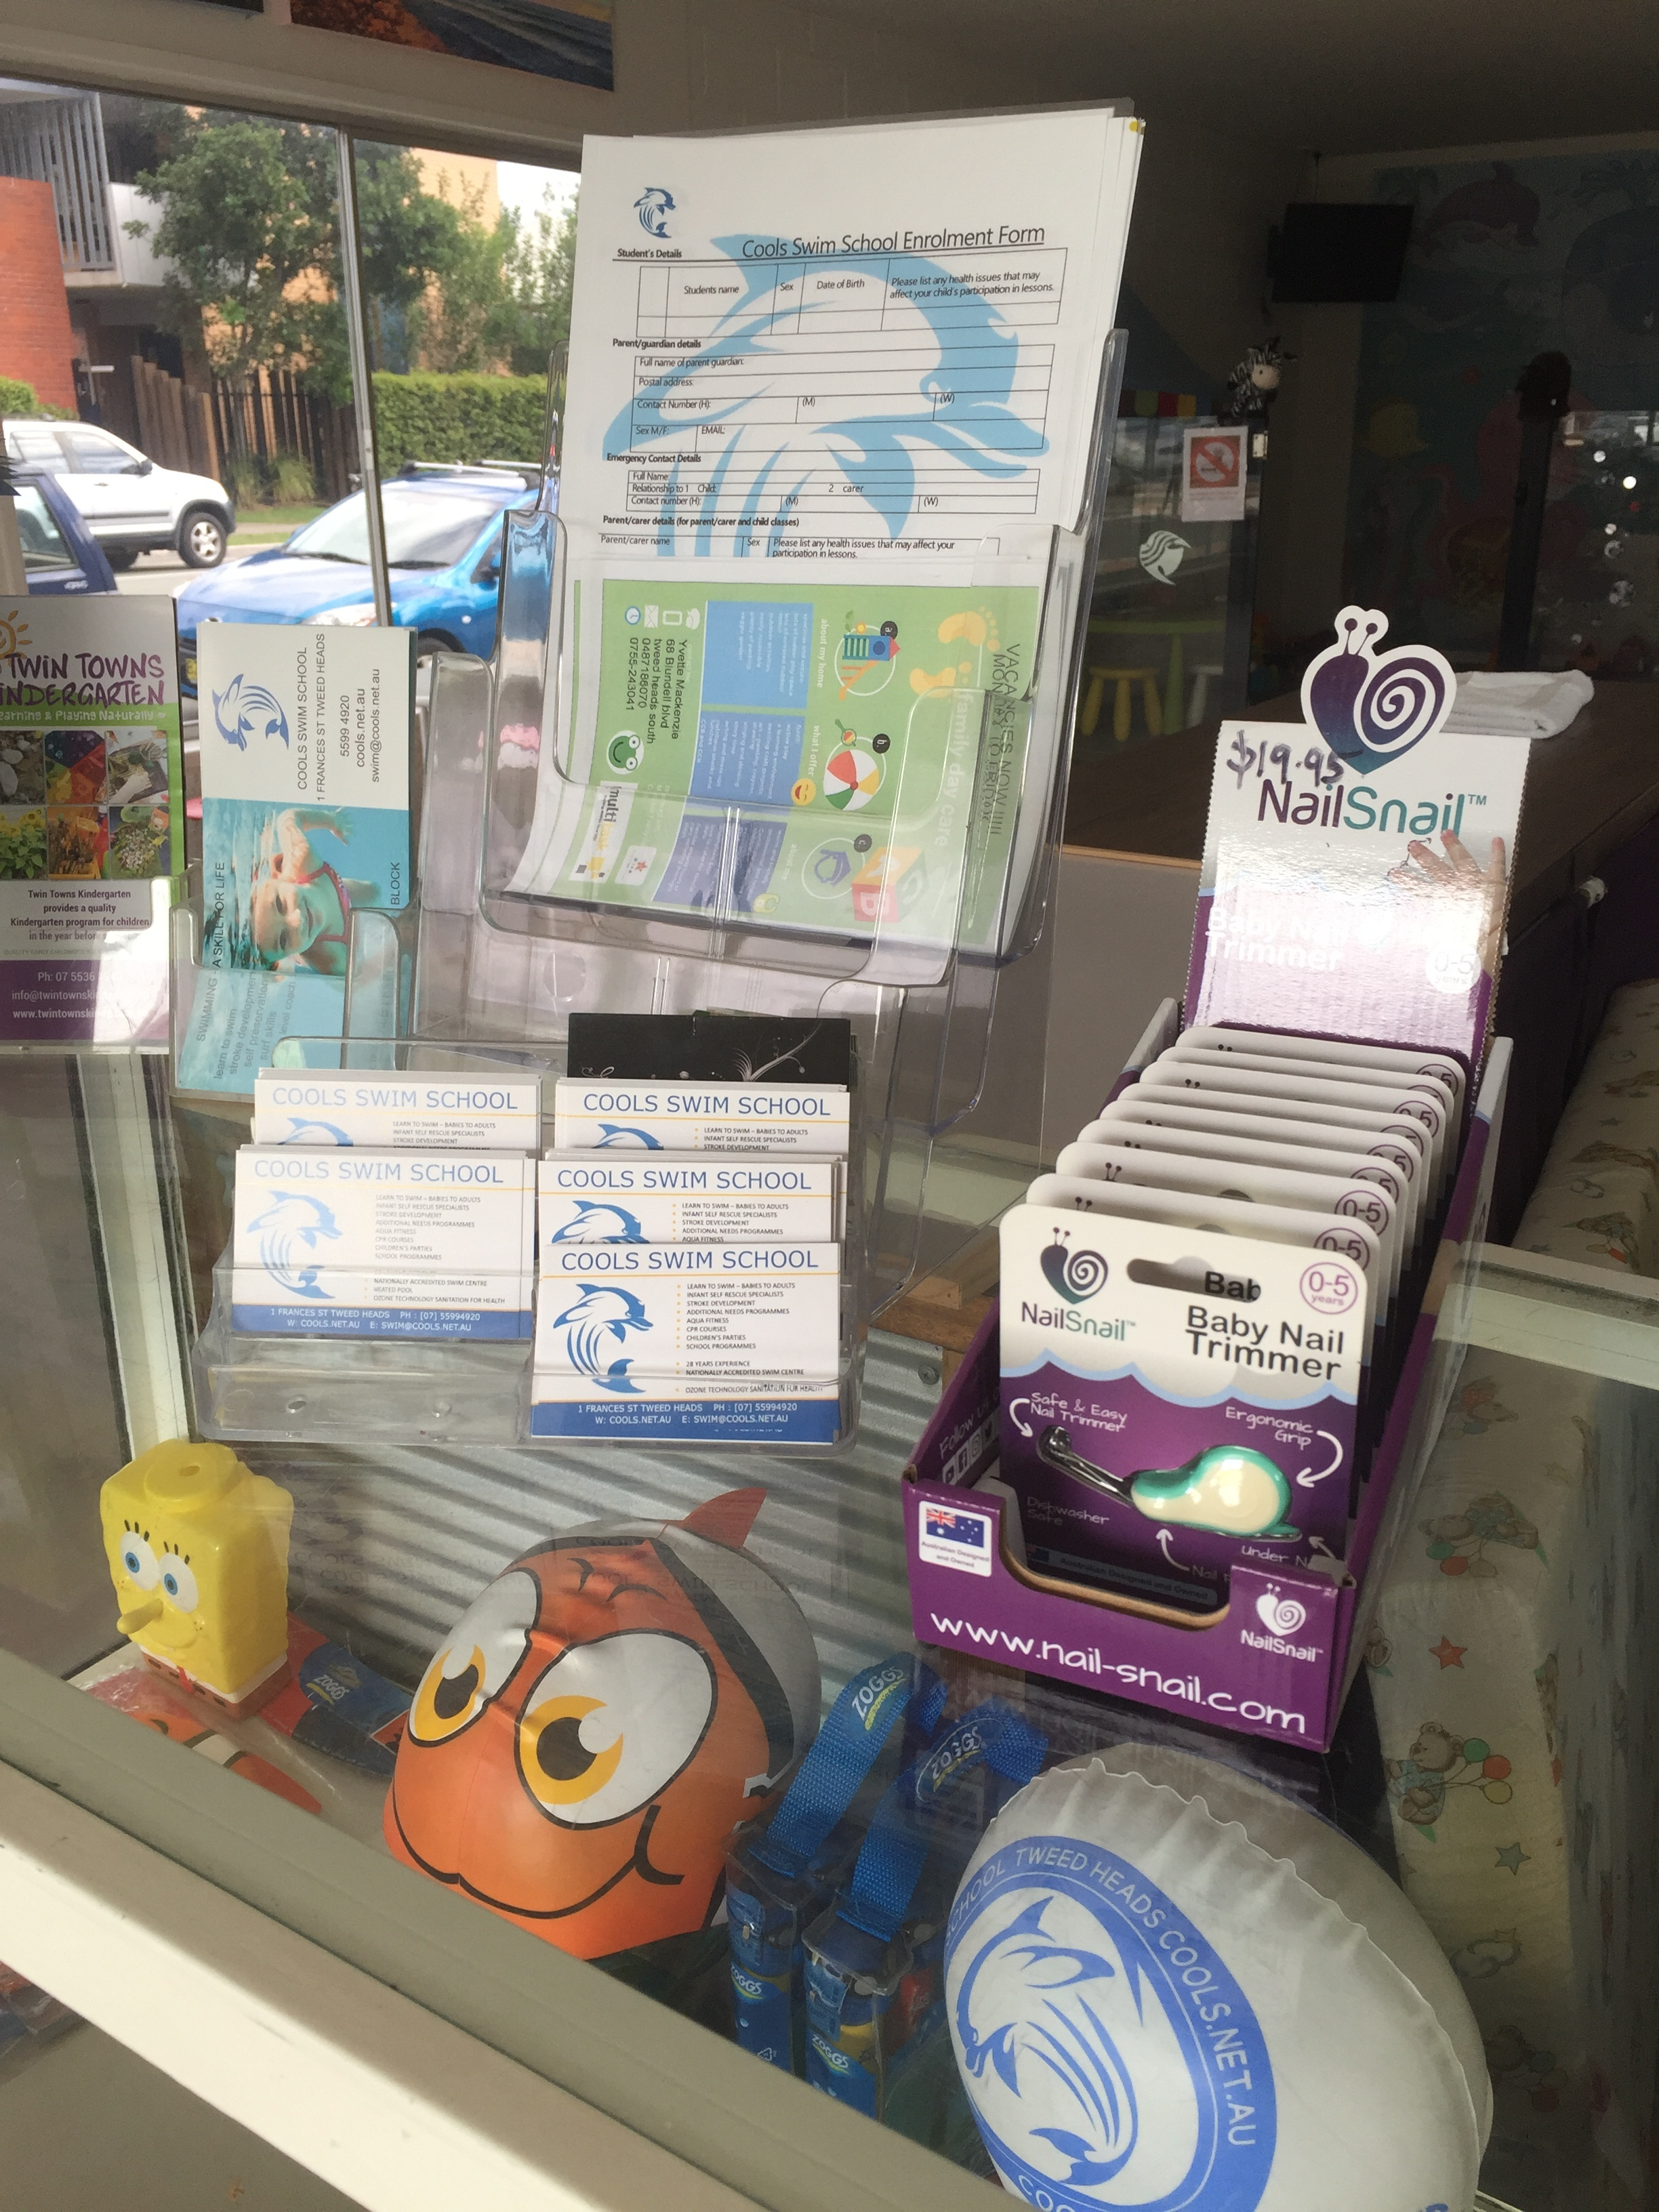 Nail Snail Counter Display Cools Swim School